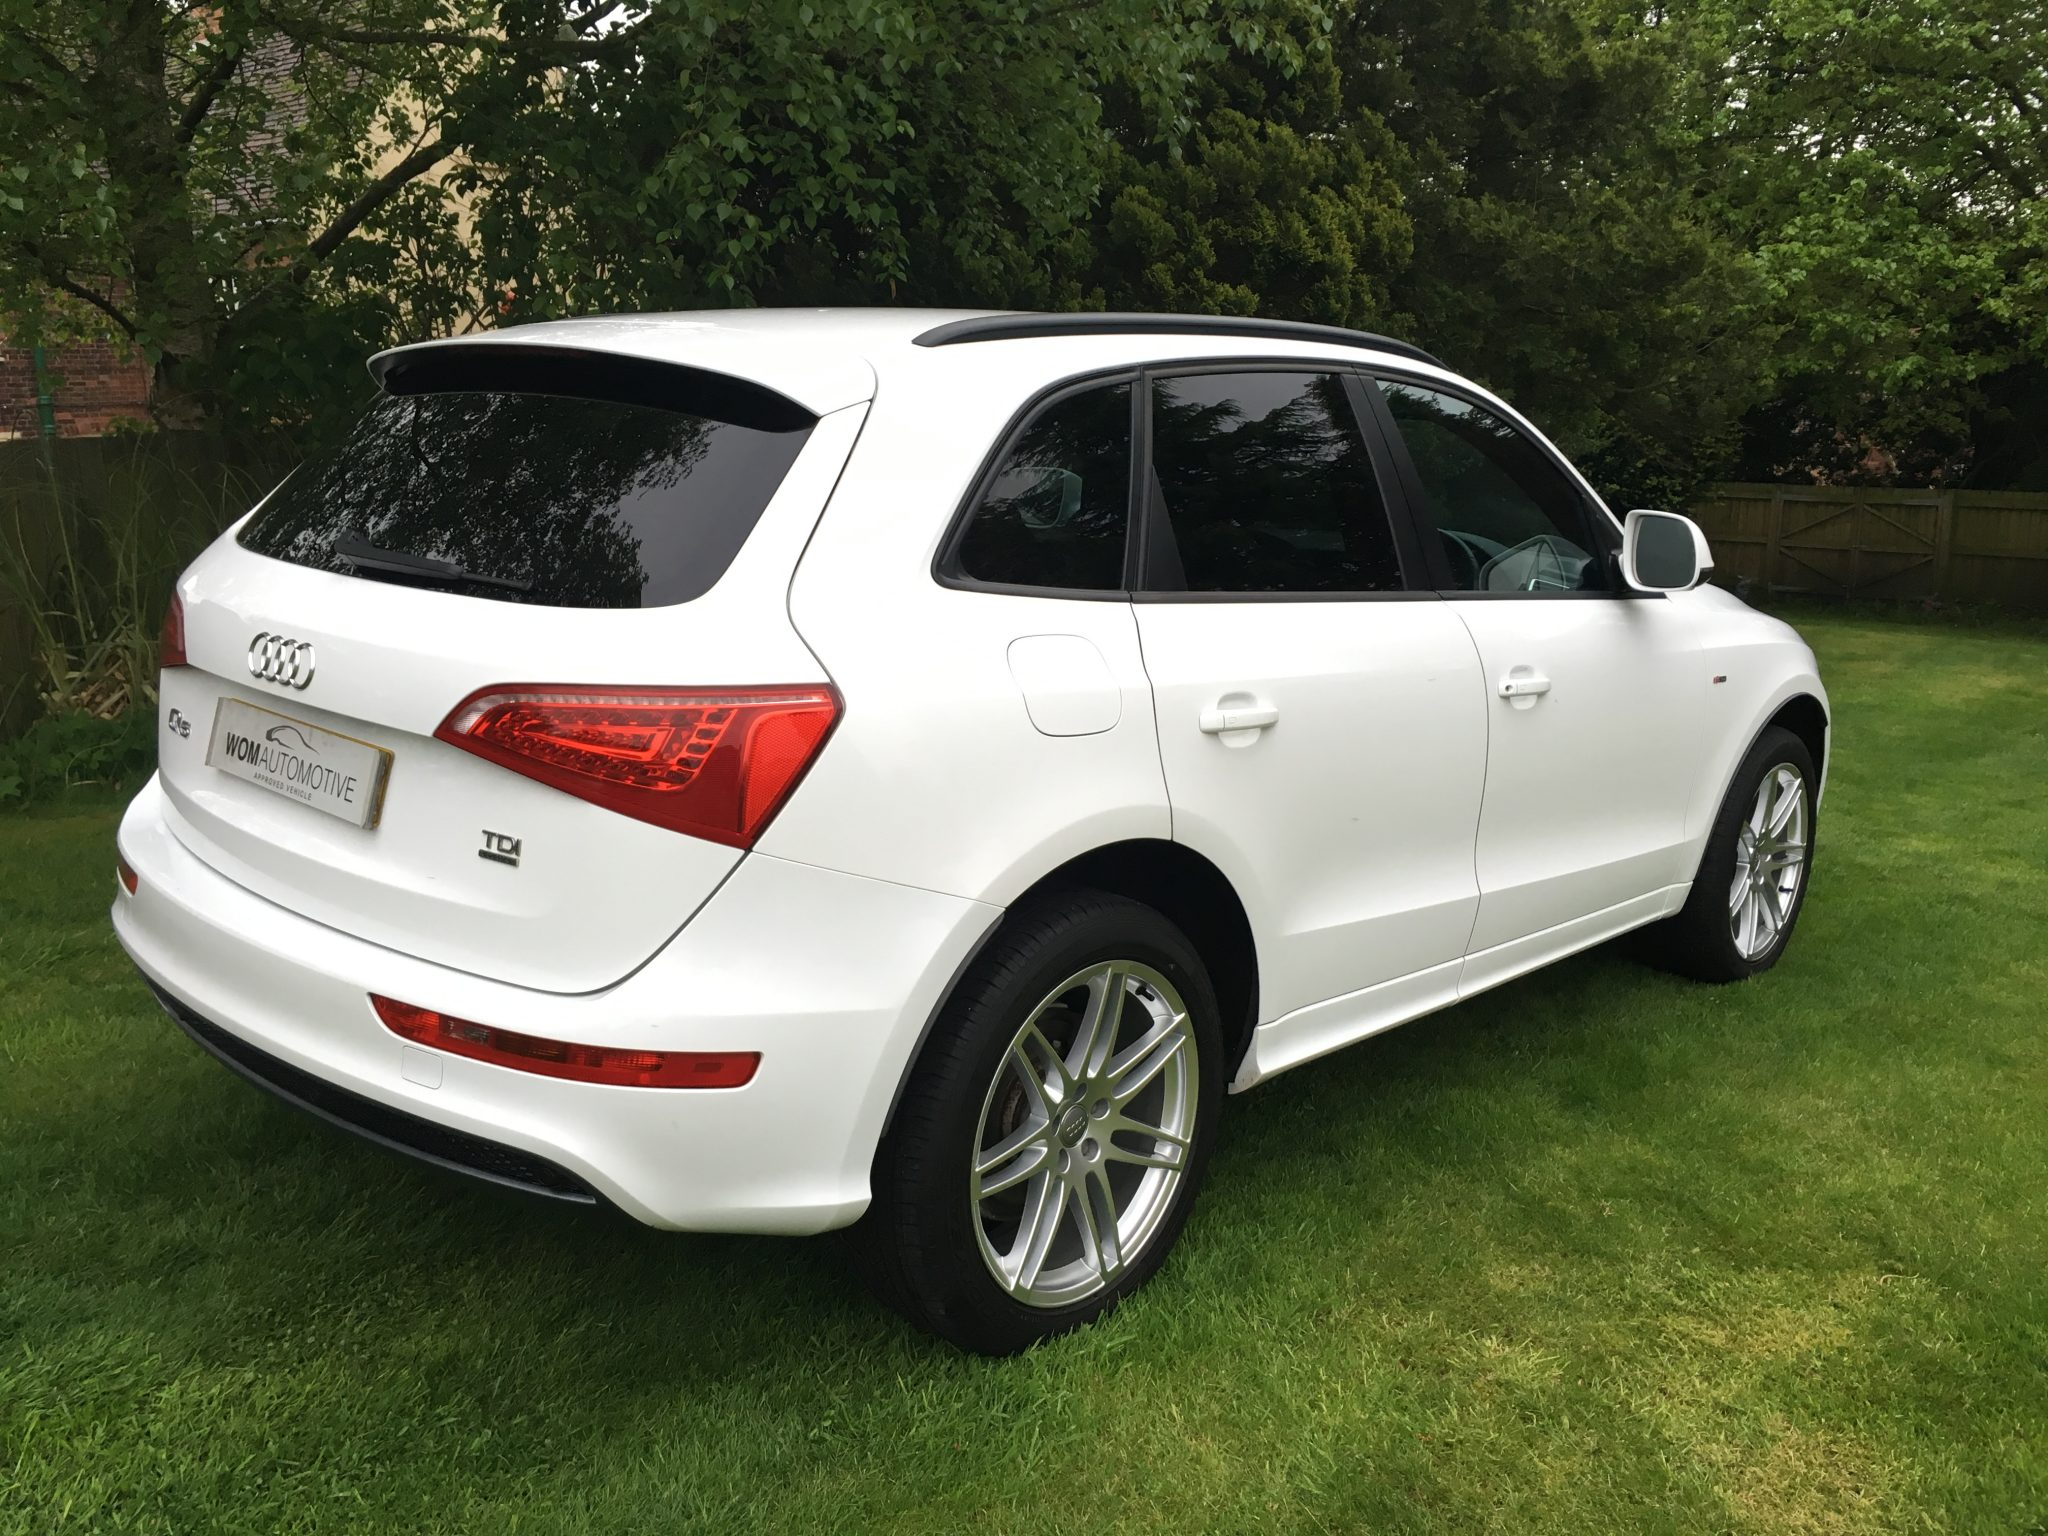 2009 59 audi q5 2 0tdi s tronic auto 170ps quattro s line 20 alloys white. Black Bedroom Furniture Sets. Home Design Ideas